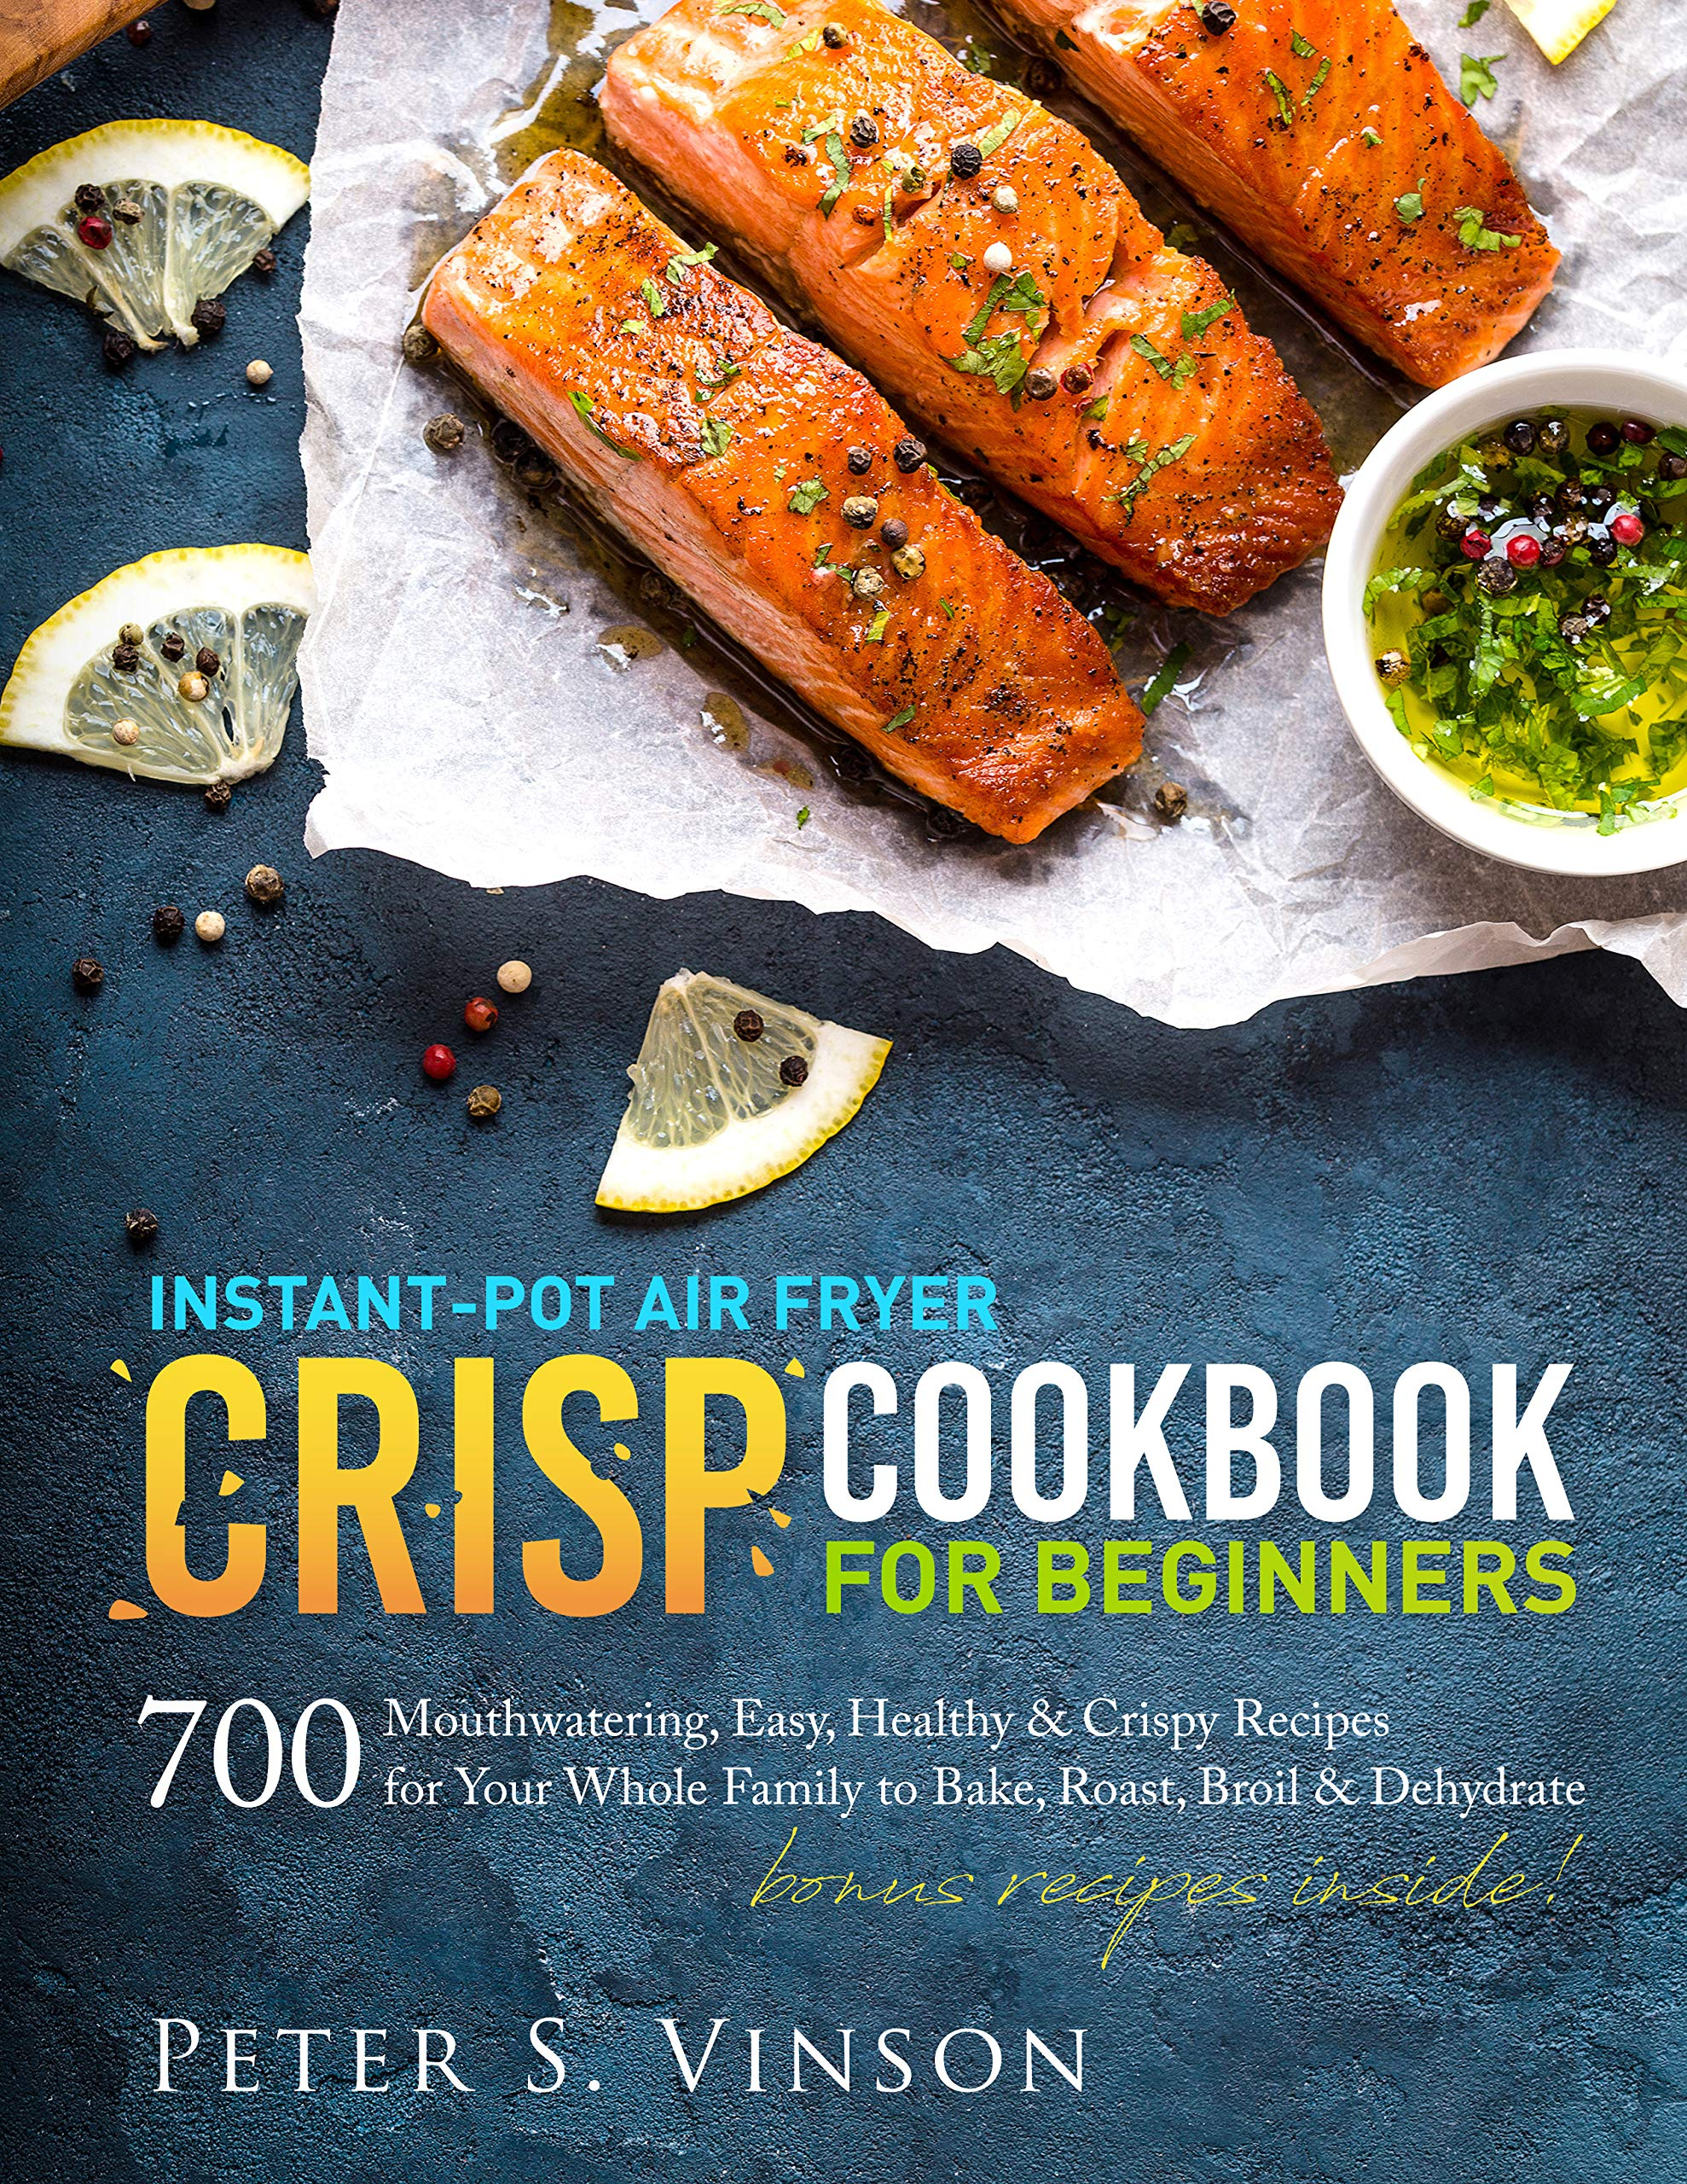 Instant-Pot Air Fryer Crisp Cookbook for Beginners: 700 Mouthwatering, Easy, Healthy and Crispy Recipes for your Whole Family to Bake, Roast, Broil and Dehydrate